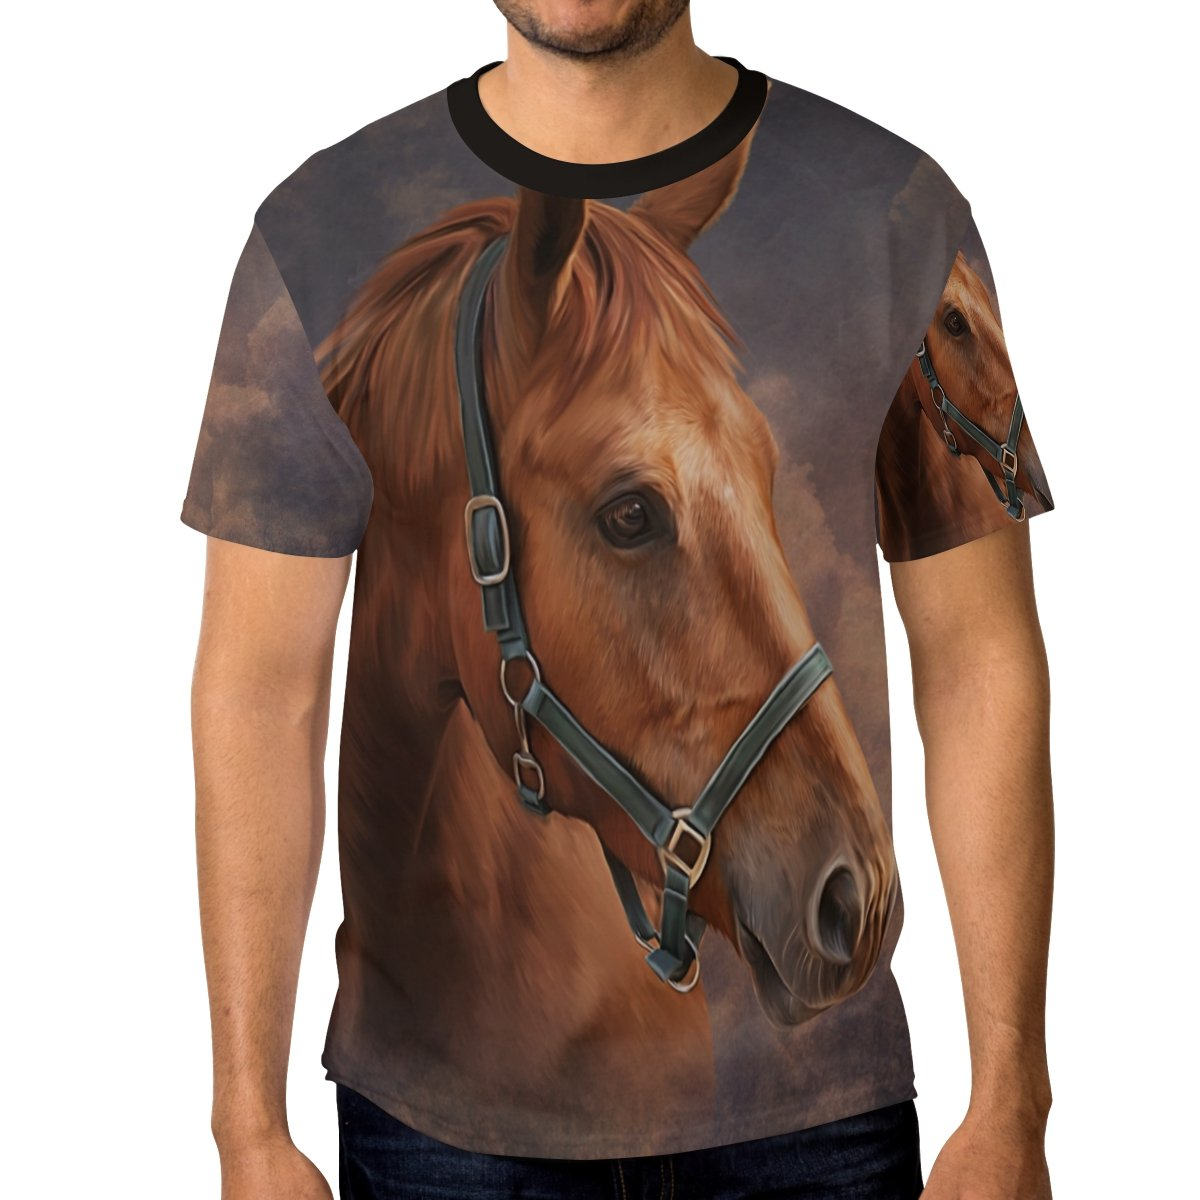 ALAZA Drawing Horse and Cloud Vintage Men's Short Sleeve T Shirt Casual Crew Neck Tee, L